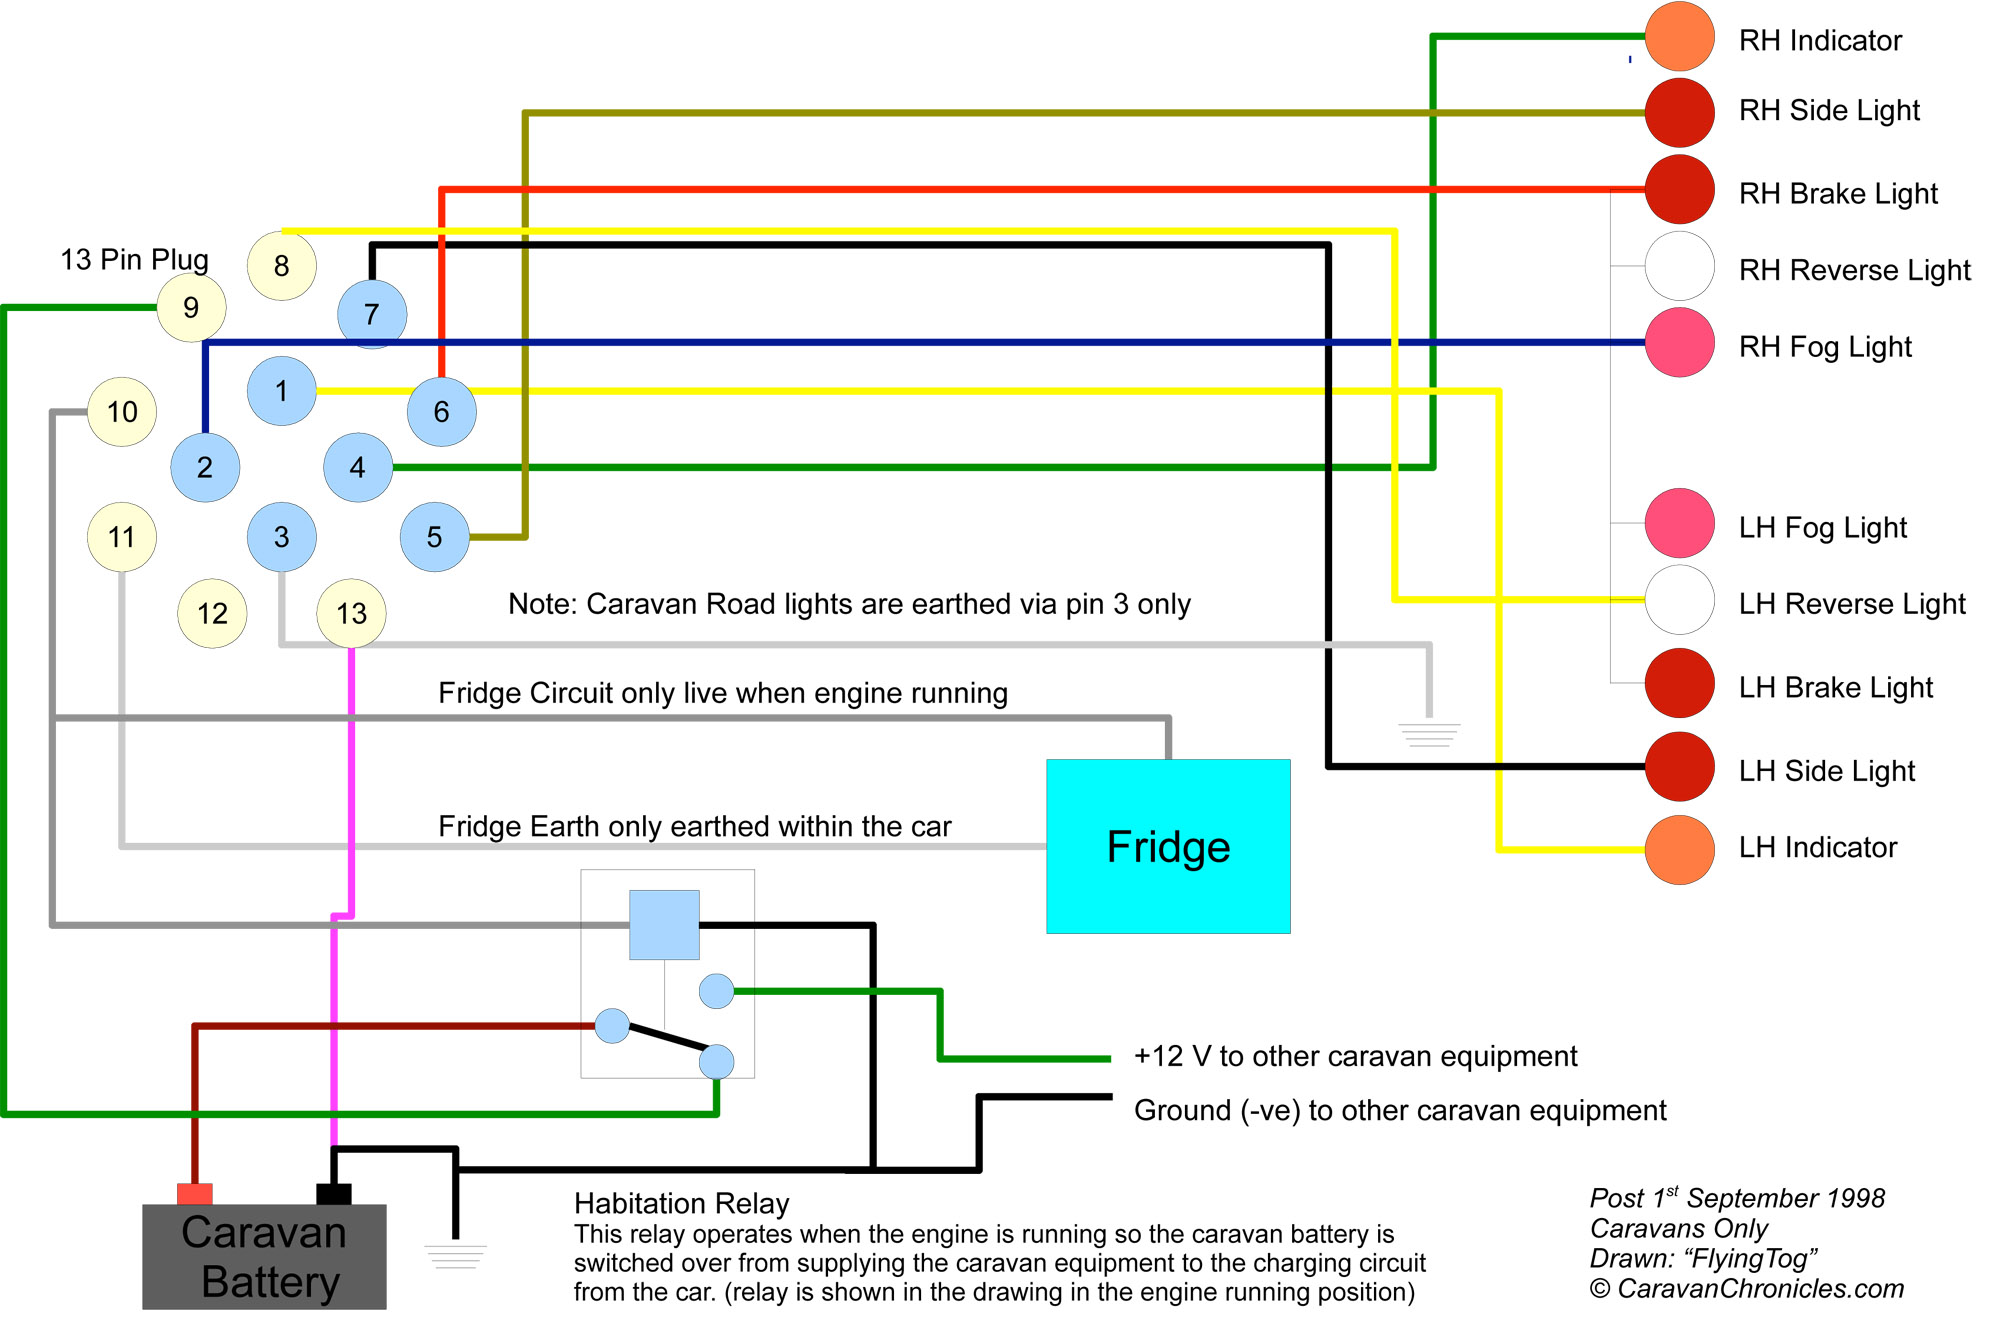 hight resolution of caravan wiring diagram simple wiring schema cruise control diagram wiring diagram 12v caravan fridge wiring diagram